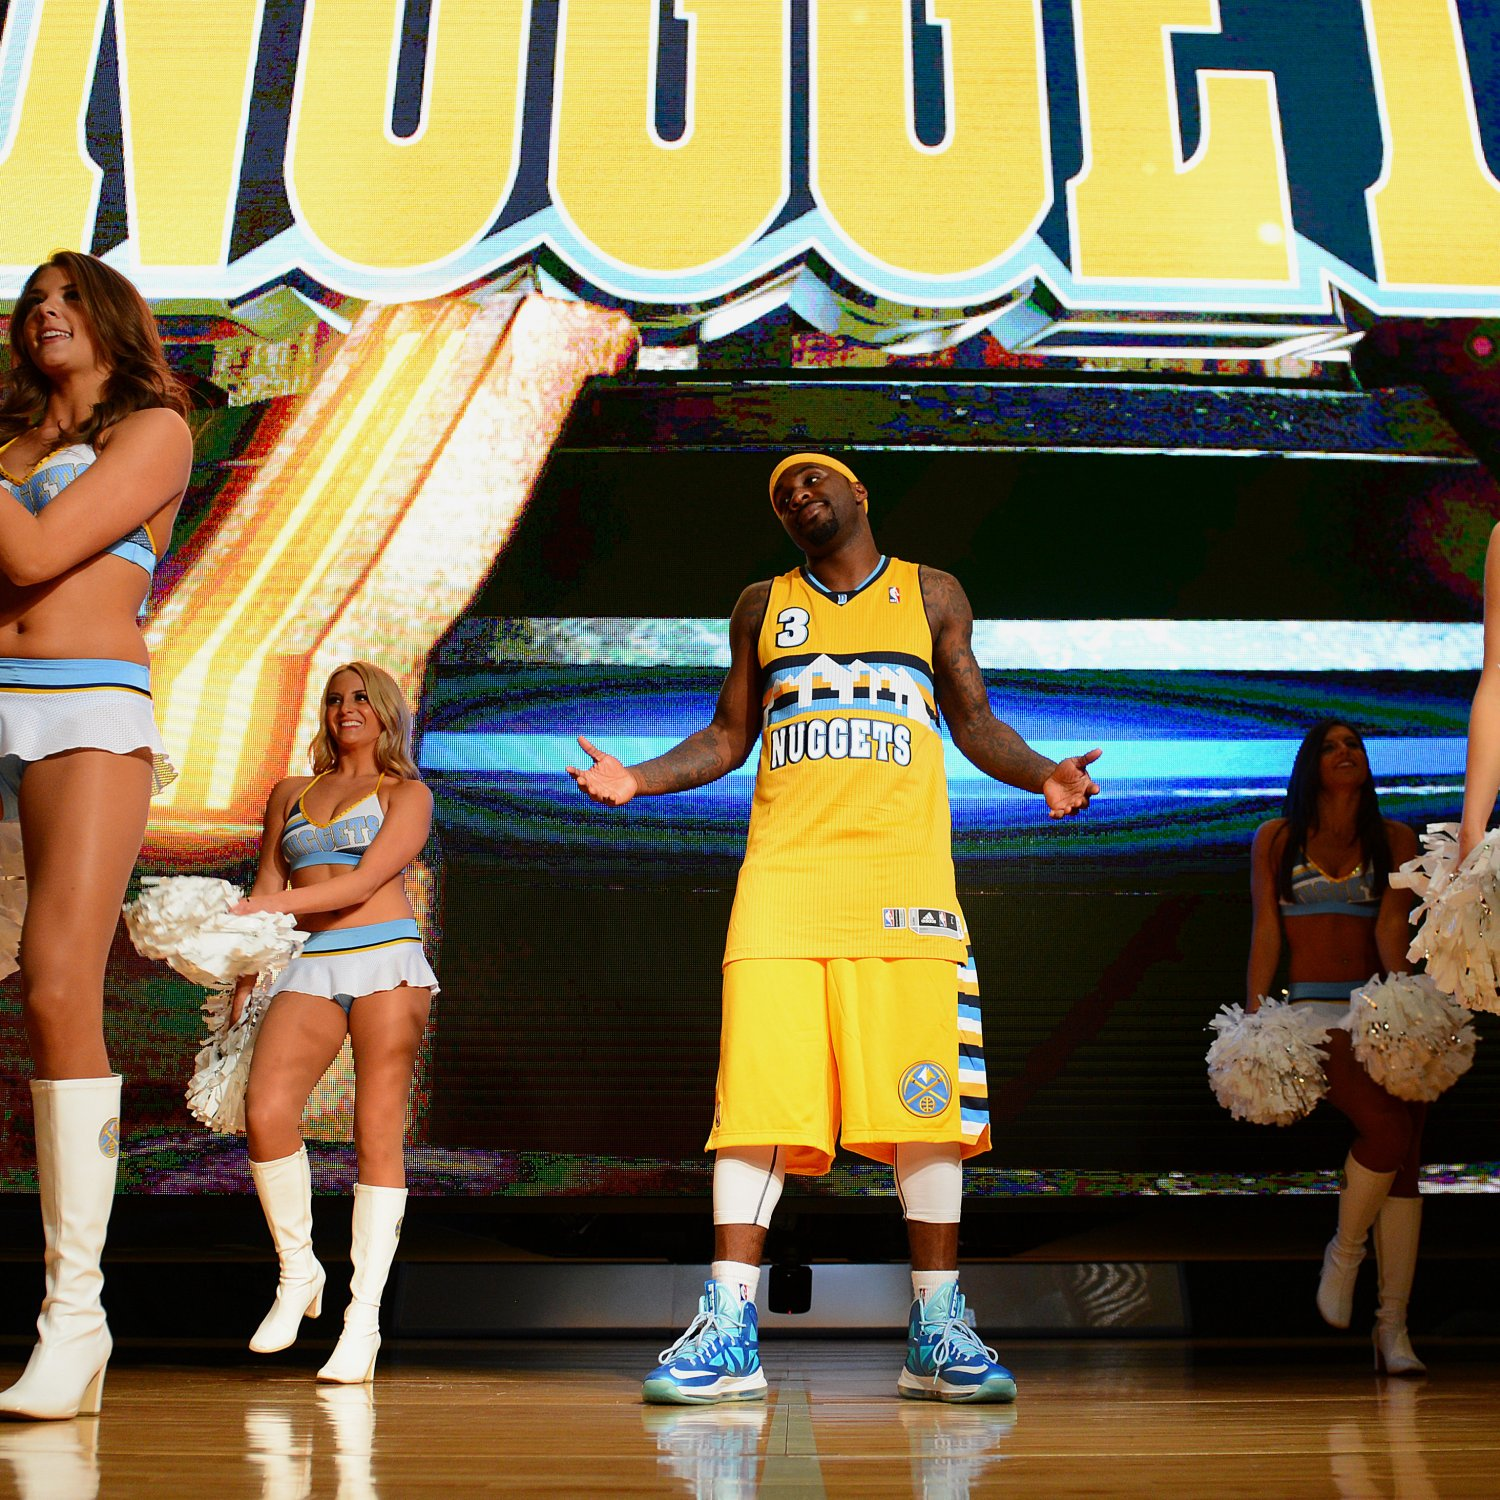 Denver Nuggets Schedule: Denver Nuggets Preview 2013-14: Lineup, Roster Predictions